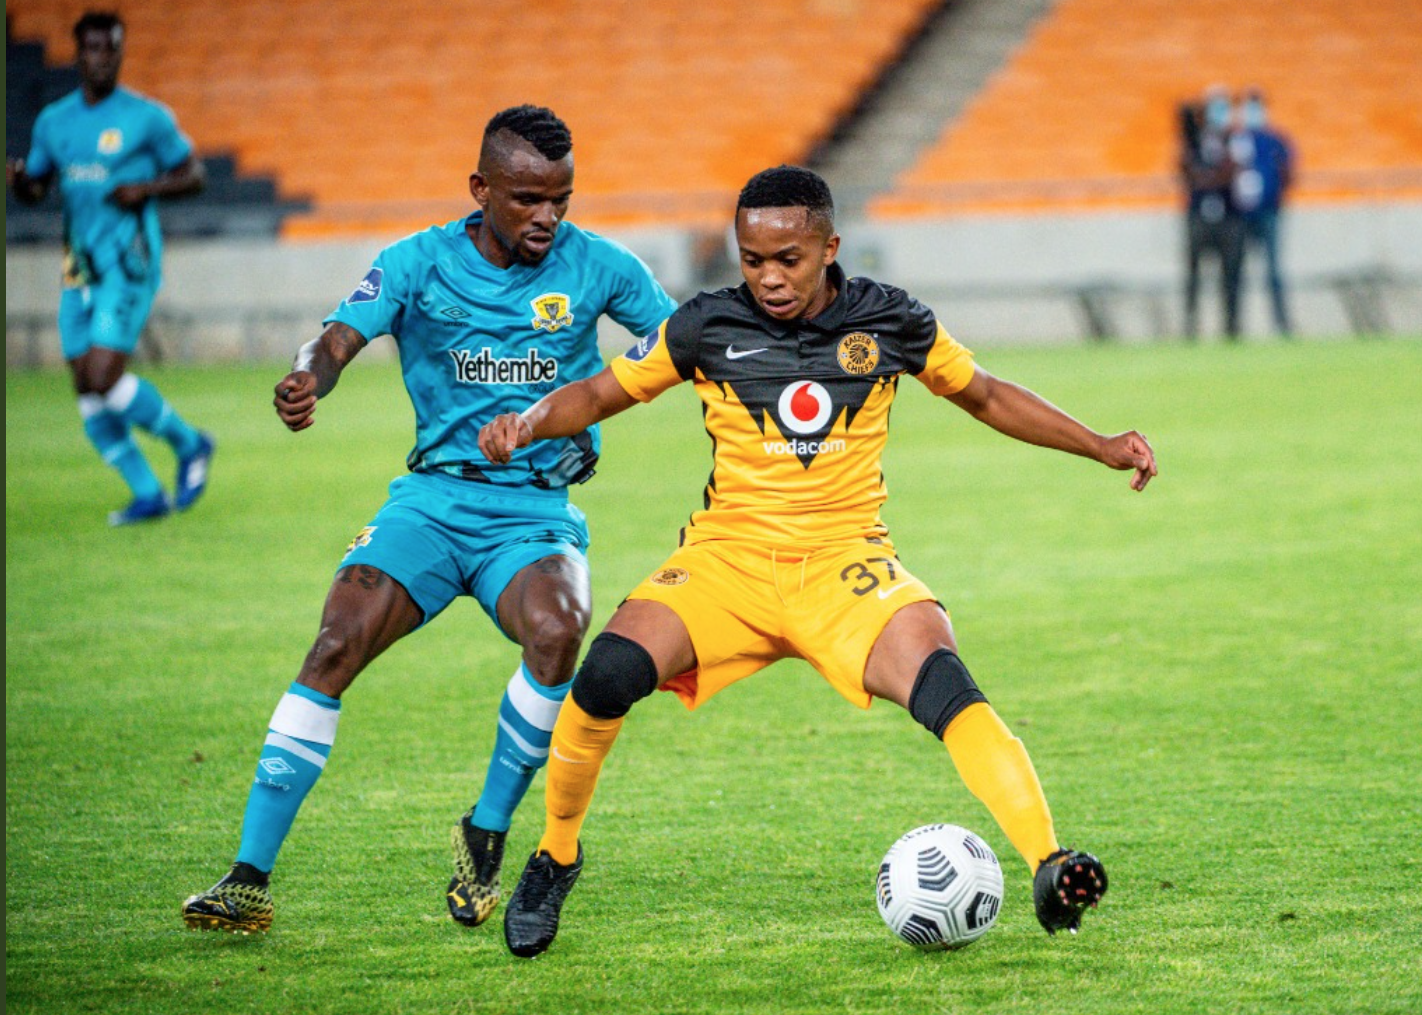 KAIZER CHIEFS FIGHT BACK TO HOLD BLACK LEOPARDS TO DRAW